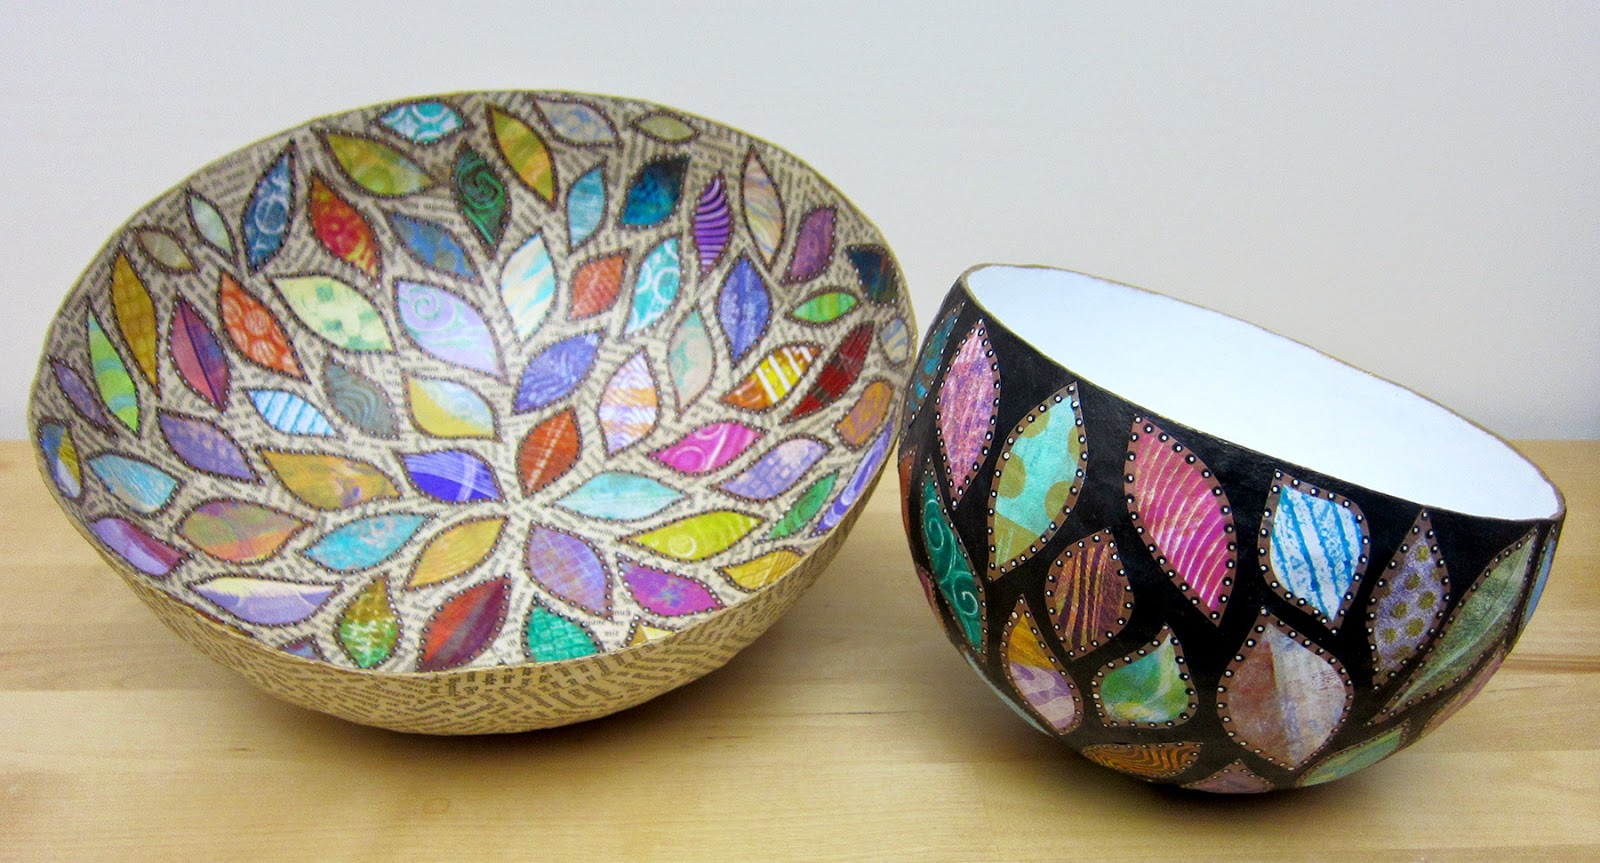 printing with gelli arts paper mache bowls with gelli prints